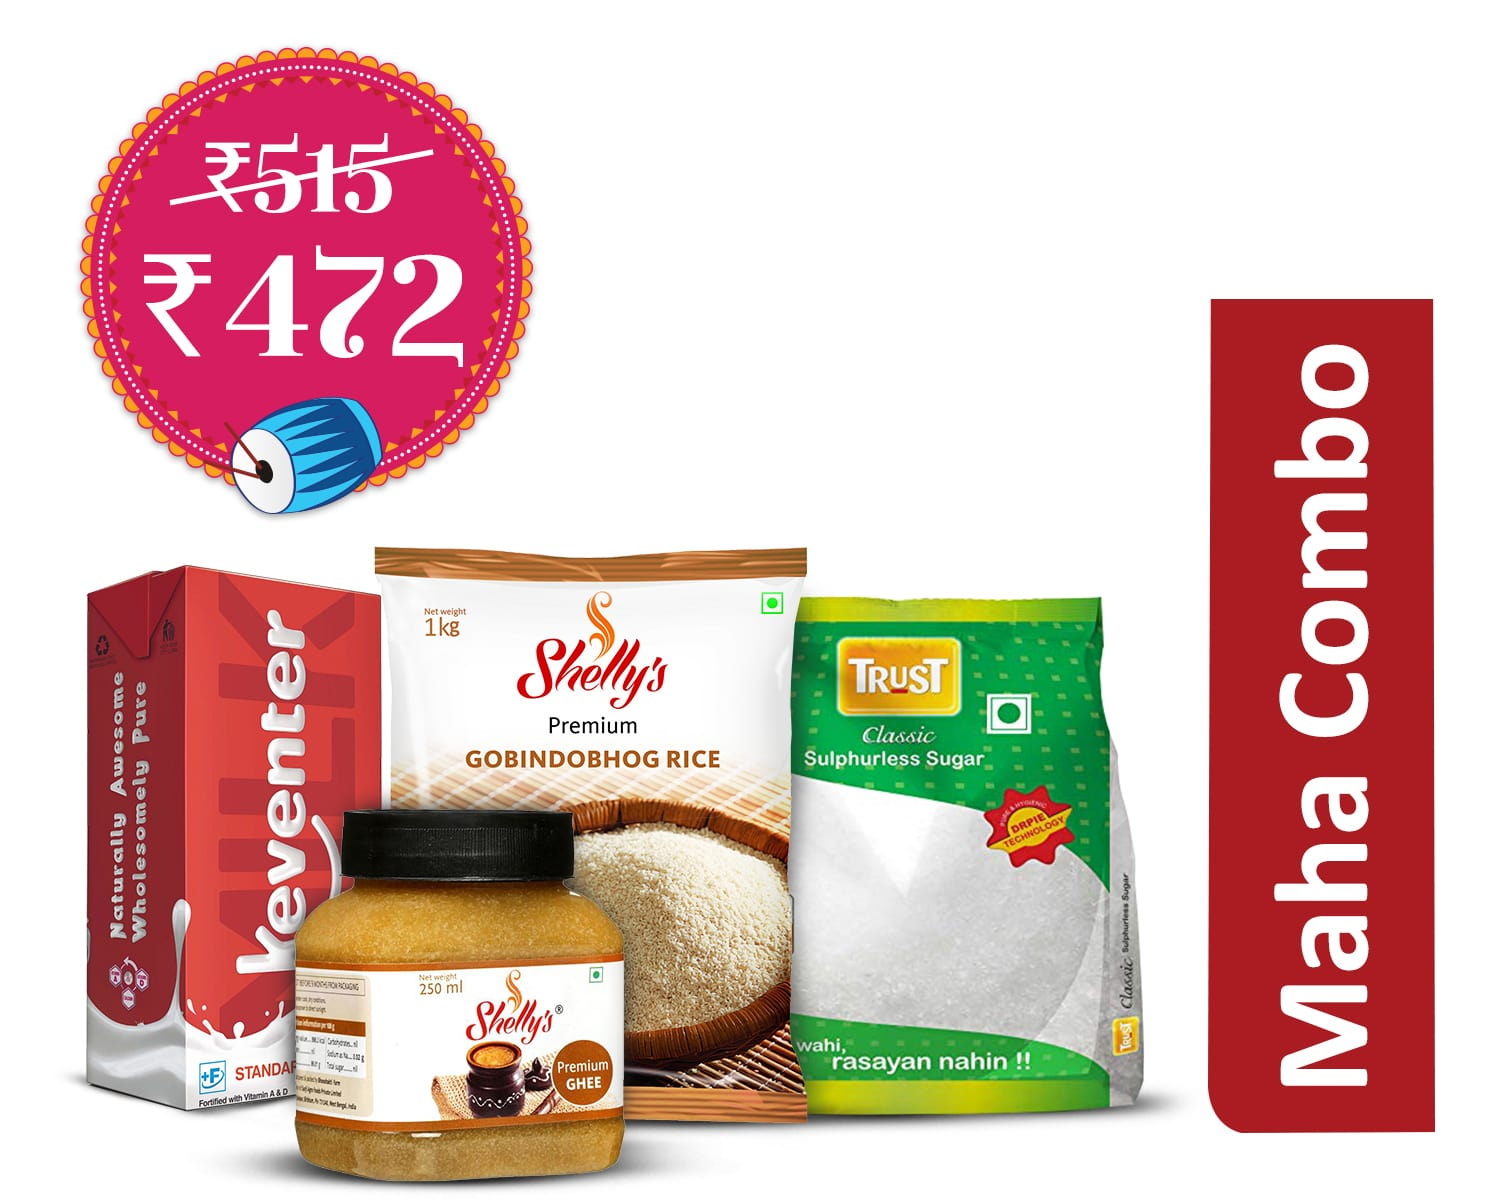 Mishti-making Essentials (1Unit): Shellys Gobindobhog Premium Rice 1kg + Shellys Premium Ghee 250gm + Keventer Standardized Milk 4.5%fat - 1Ltr + Trust Classic Sugar -1kg.